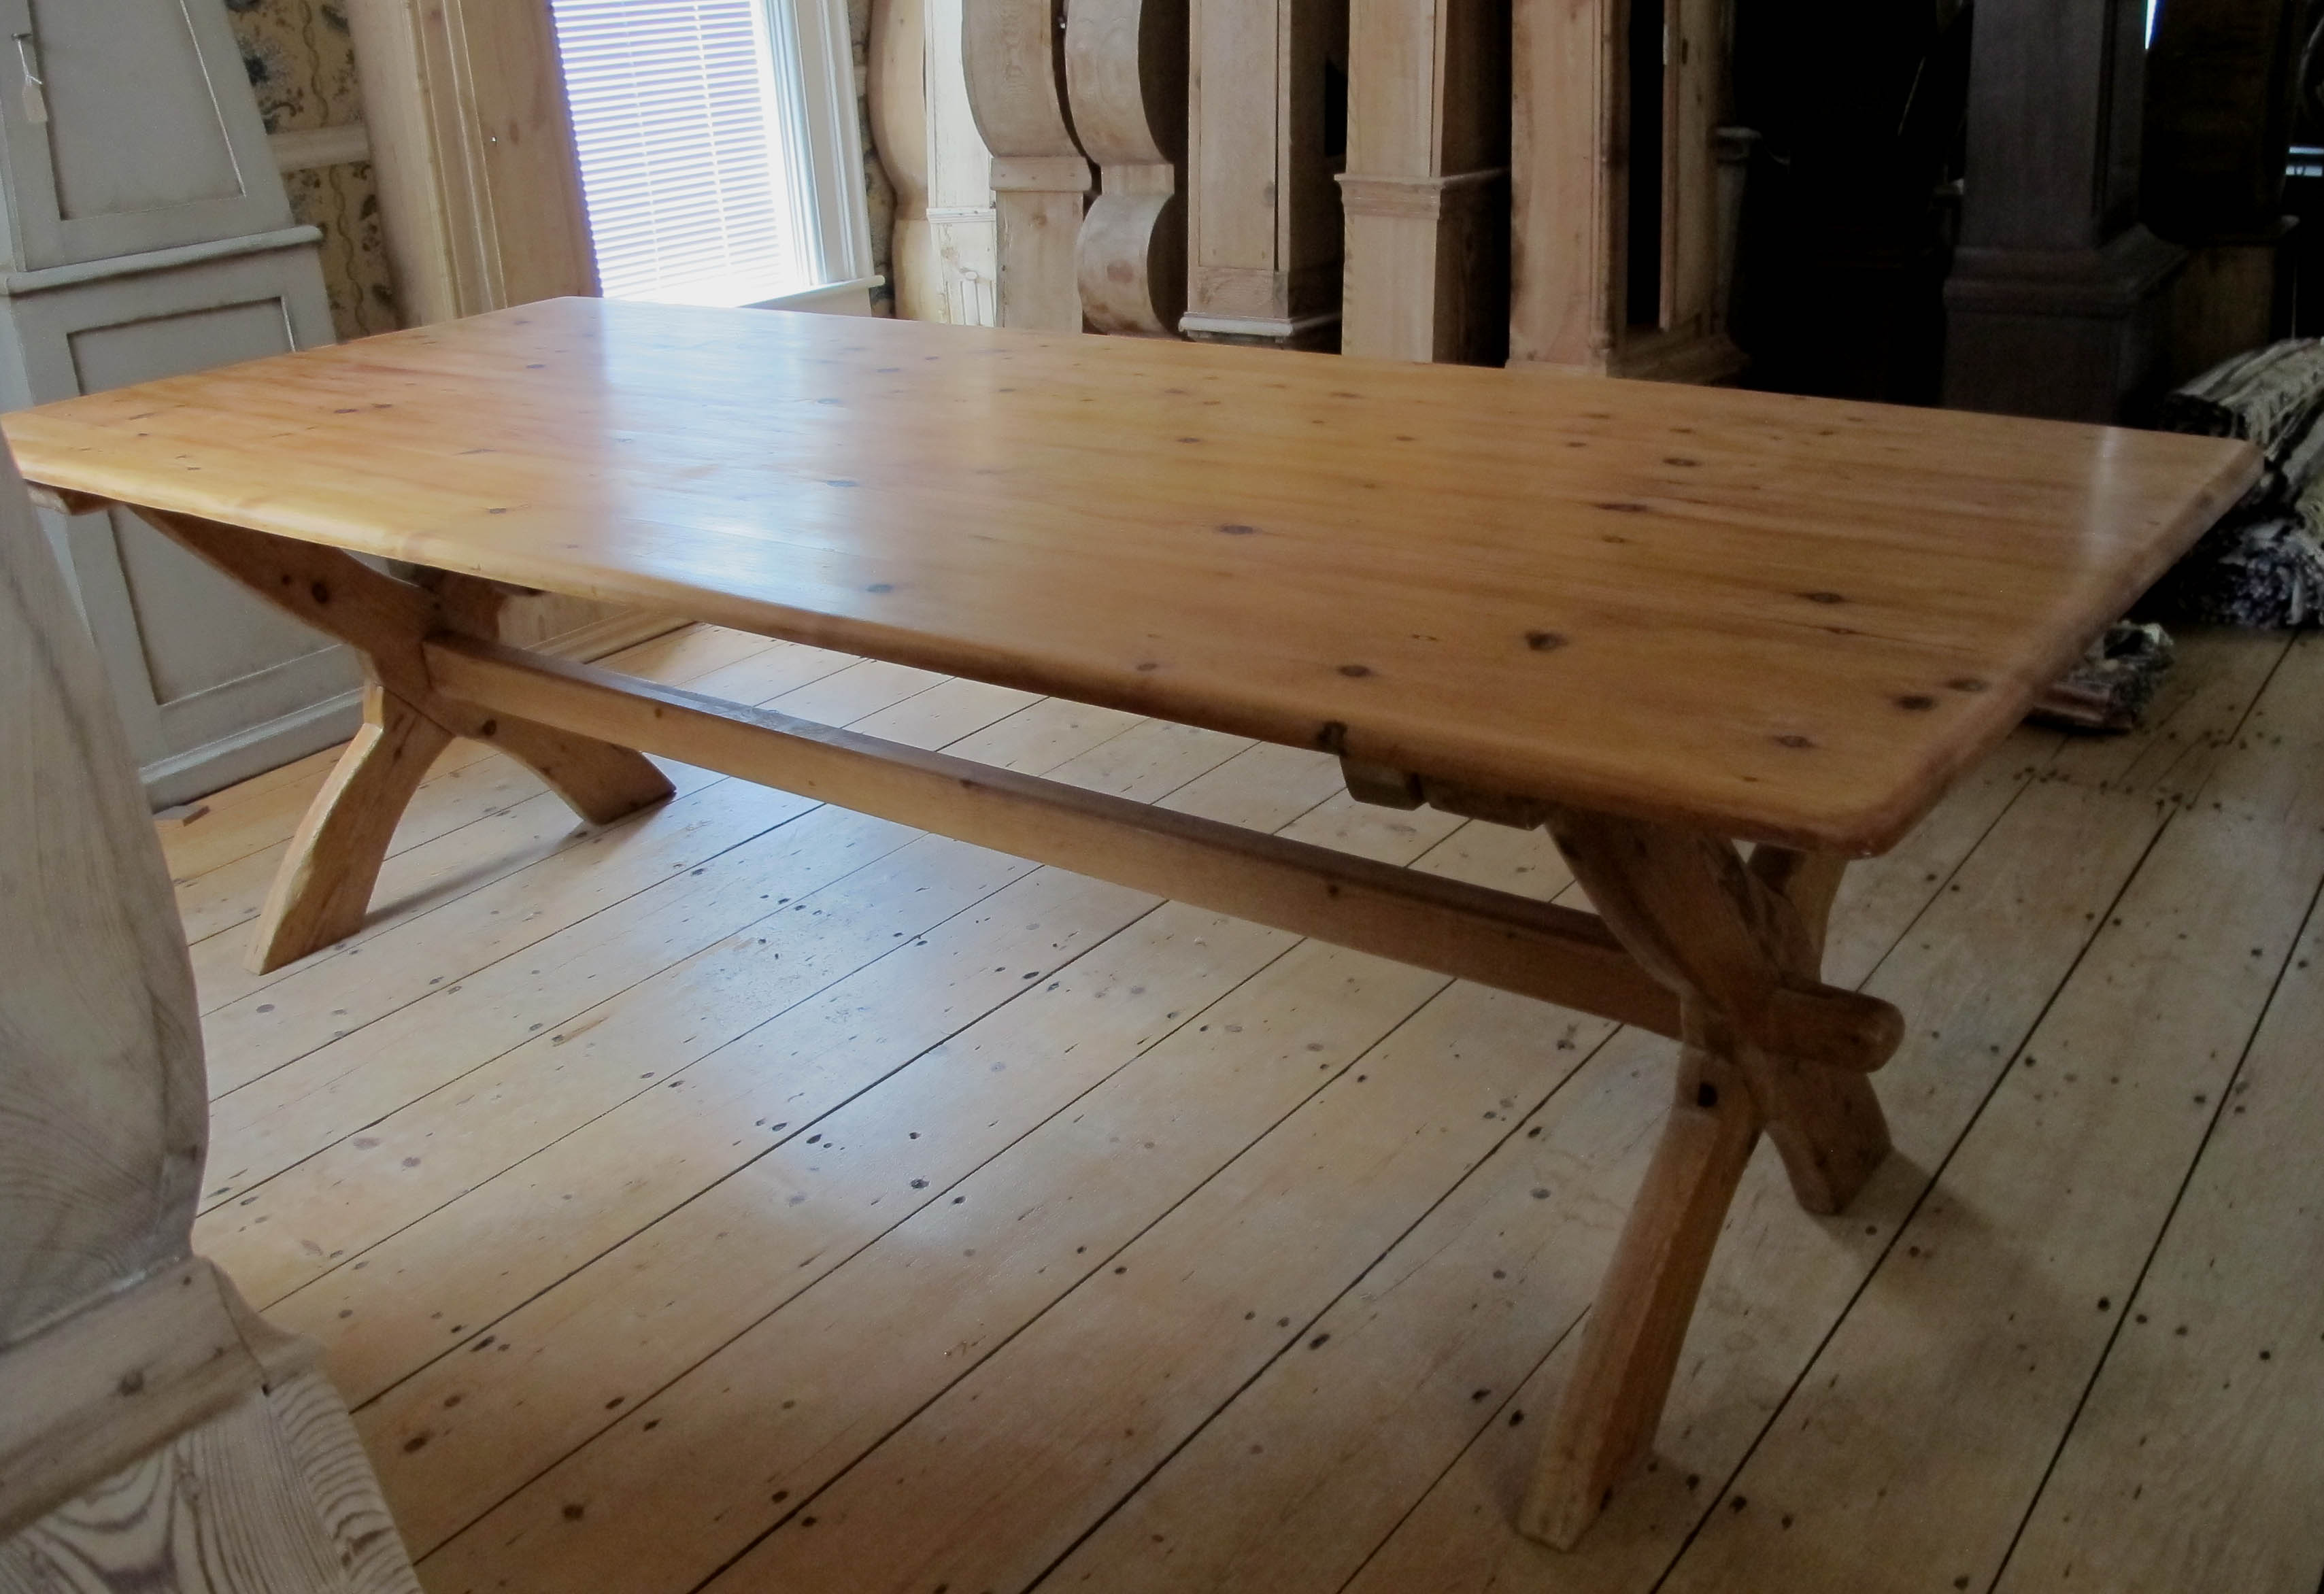 Antique Swedish Plank Table Antique Swedish Plank Table ...